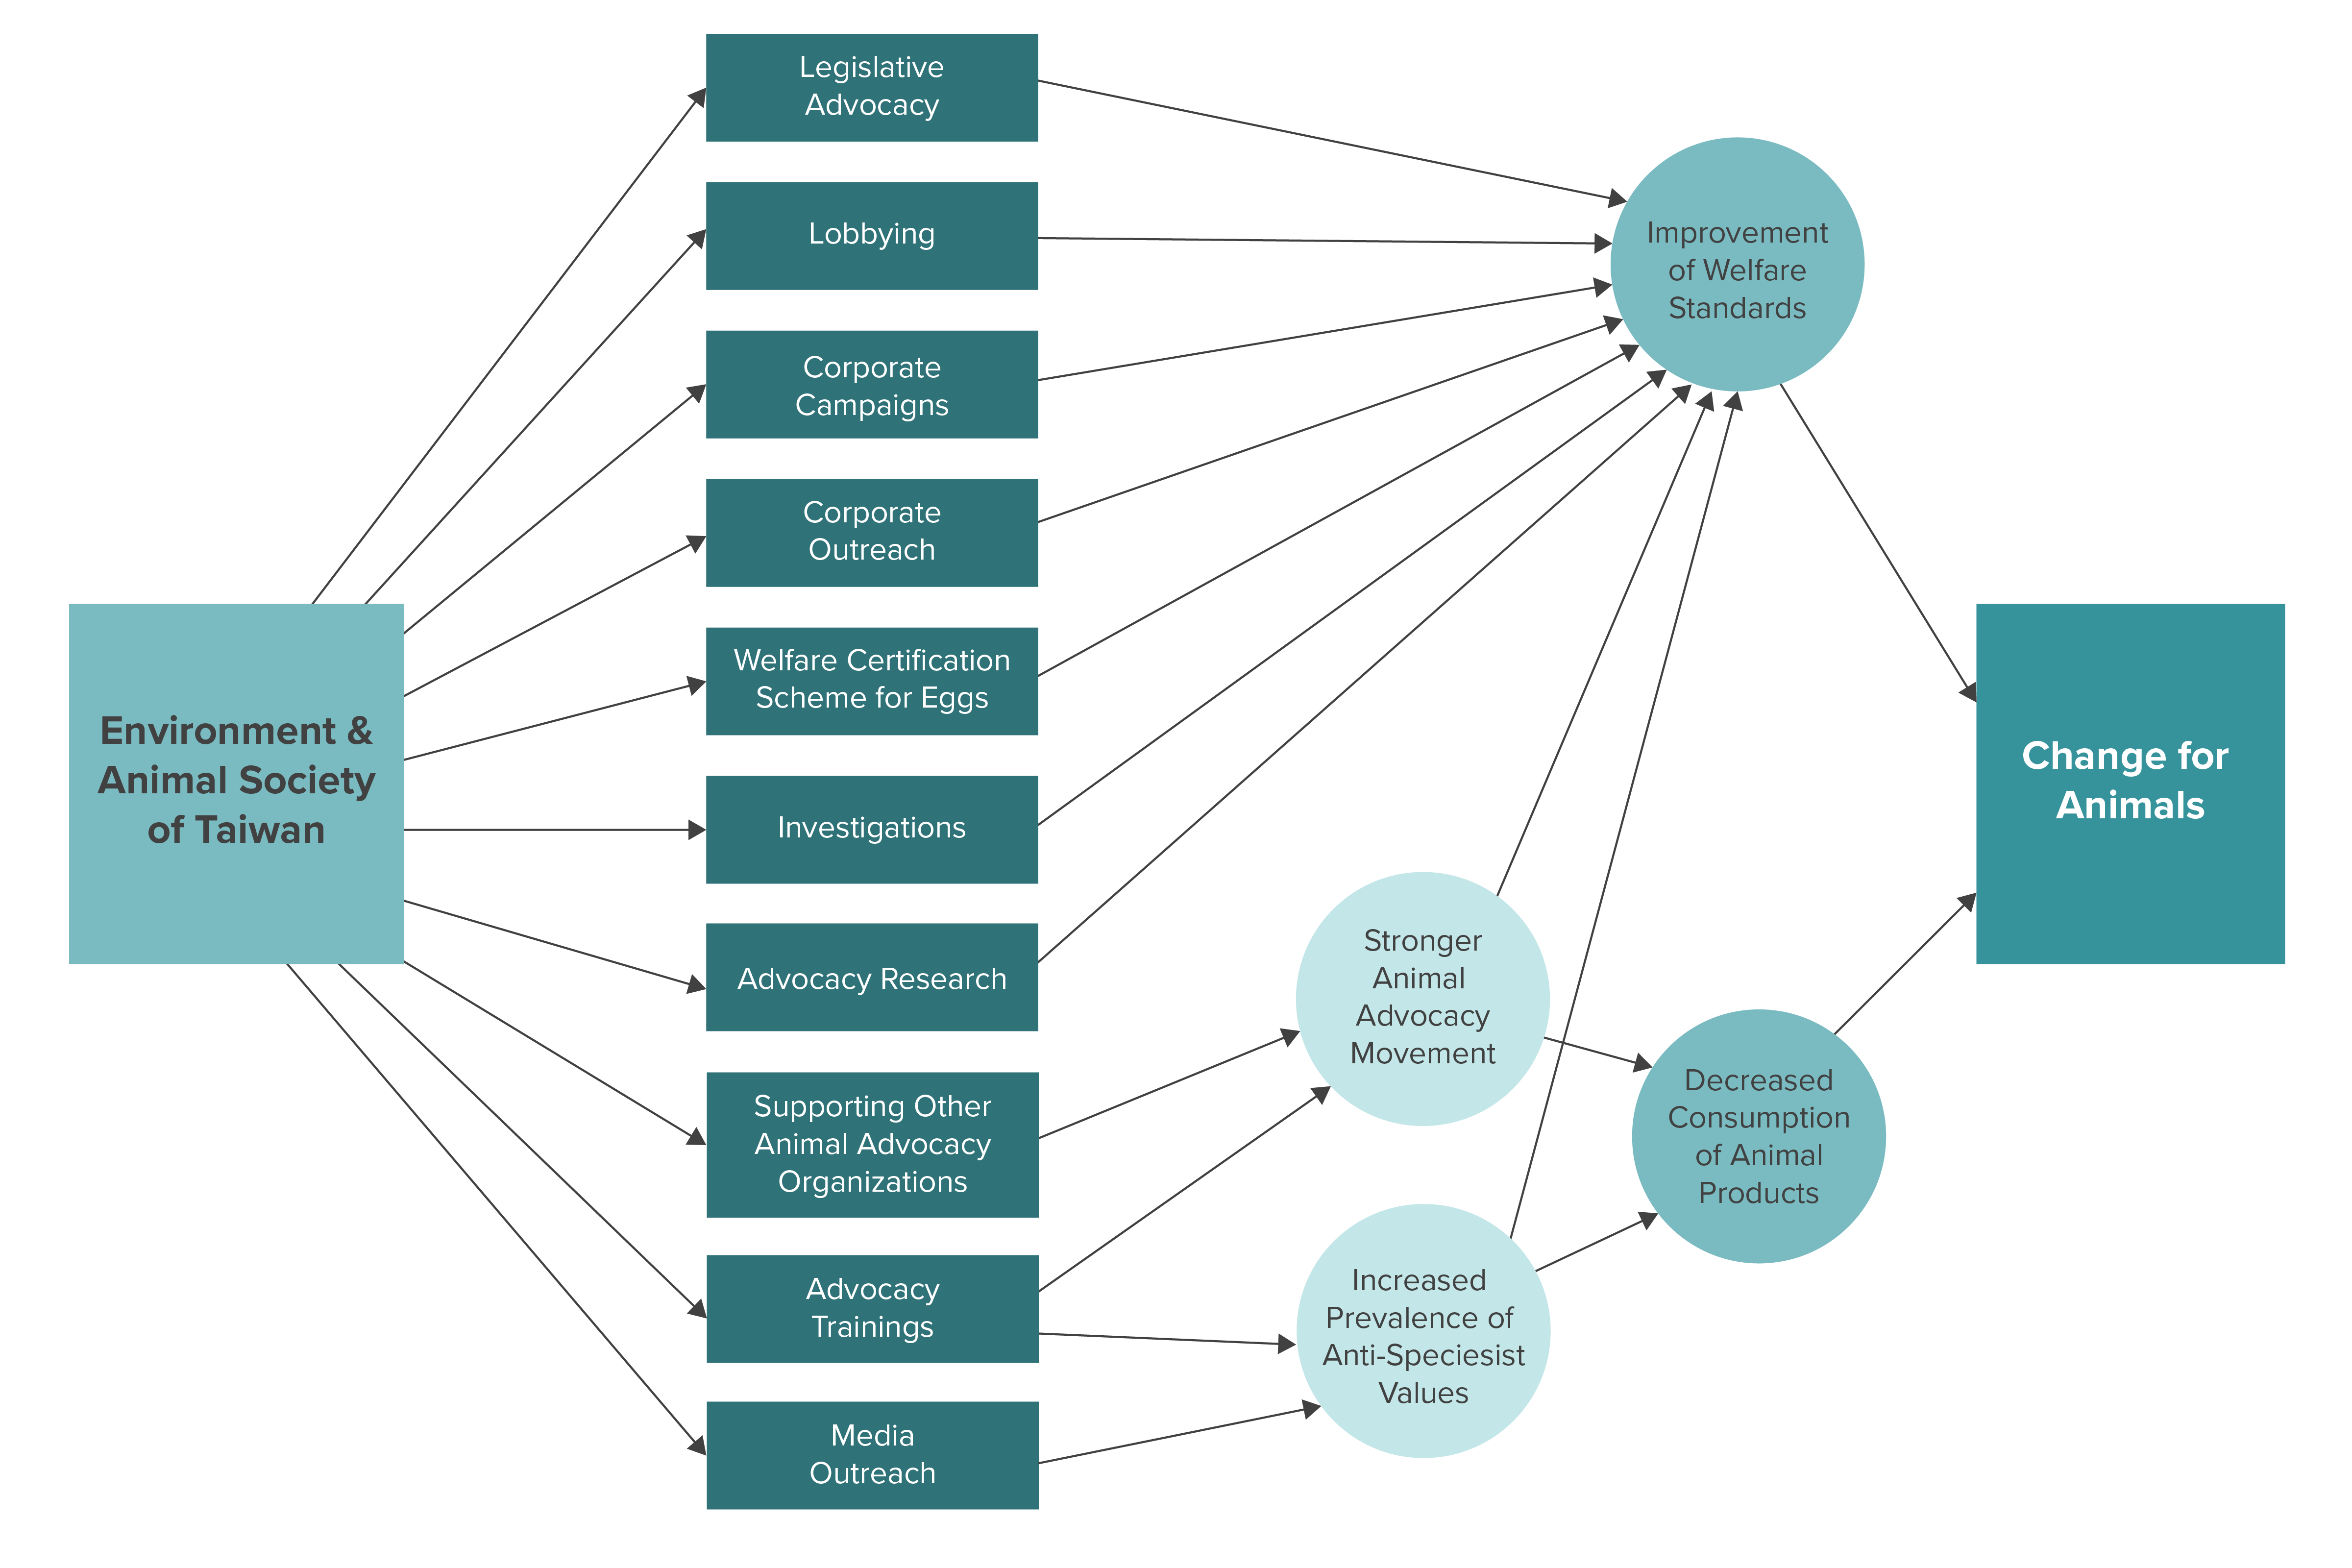 EAST Theory of Change Diagram